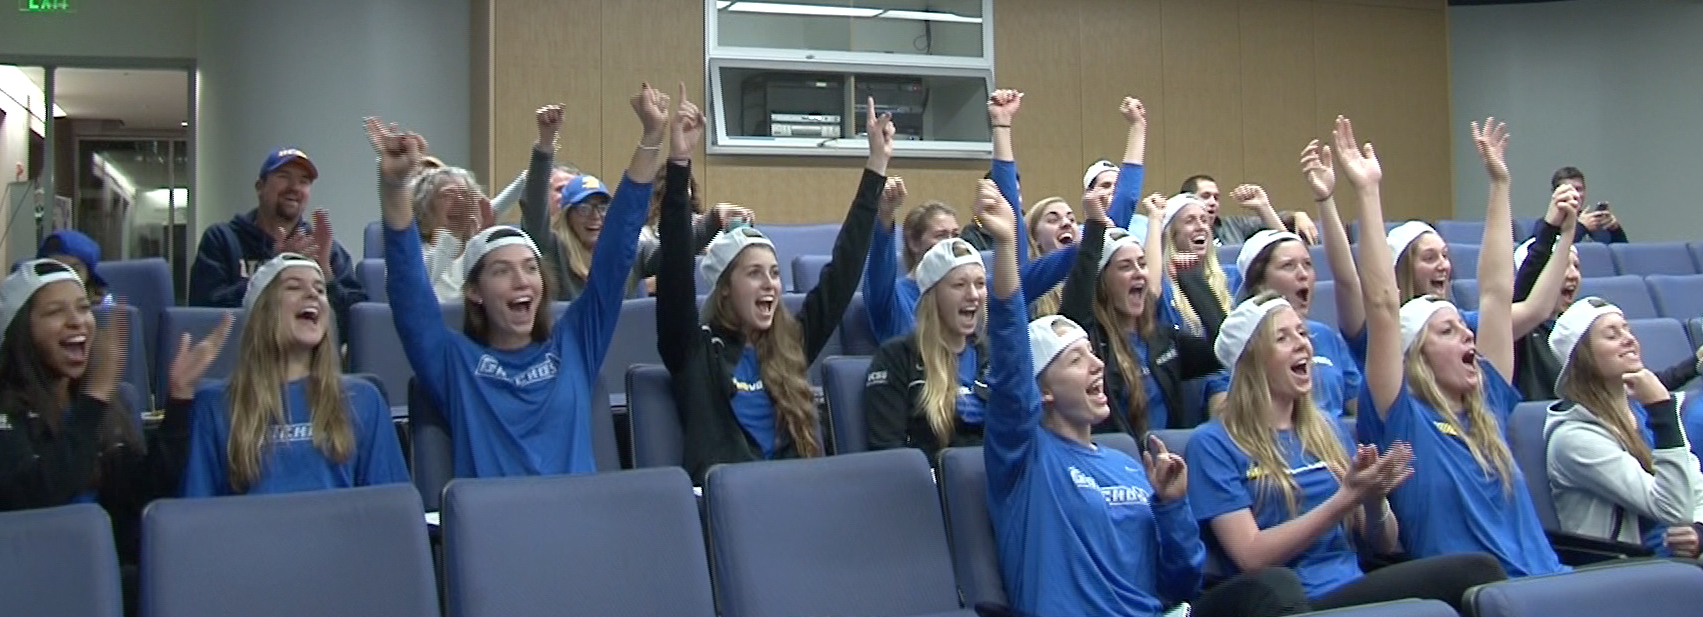 UCSB to Face No. 9 San Diego in First Round of NCAA Tournament